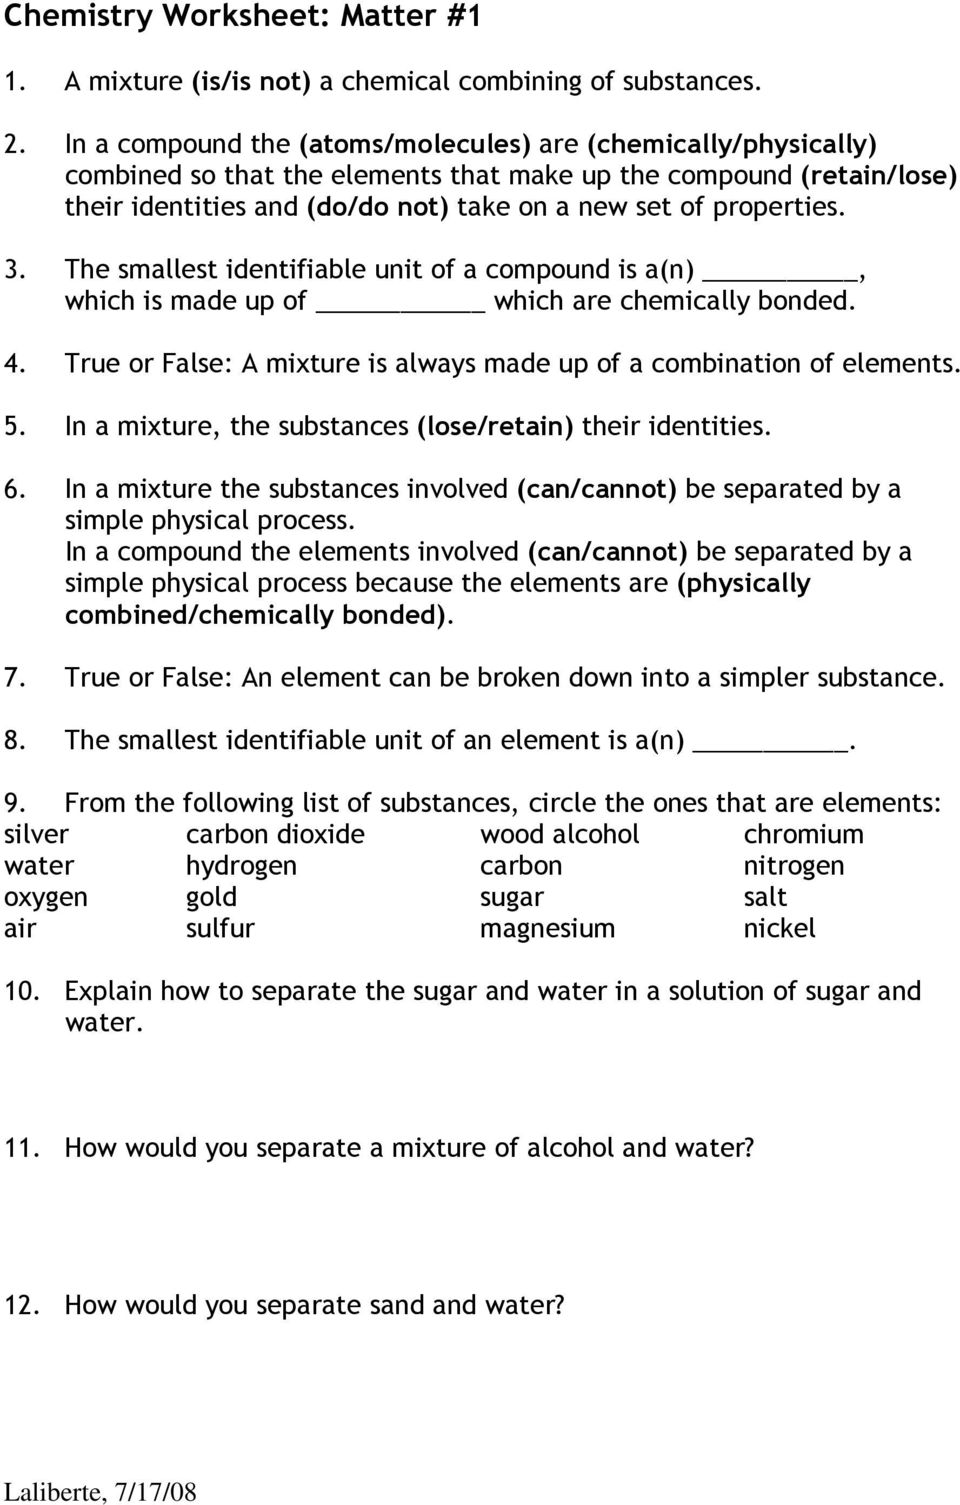 Uncategorized Properties Of Matter Worksheet physical and chemical properties worksheet moniezja com changes termolak